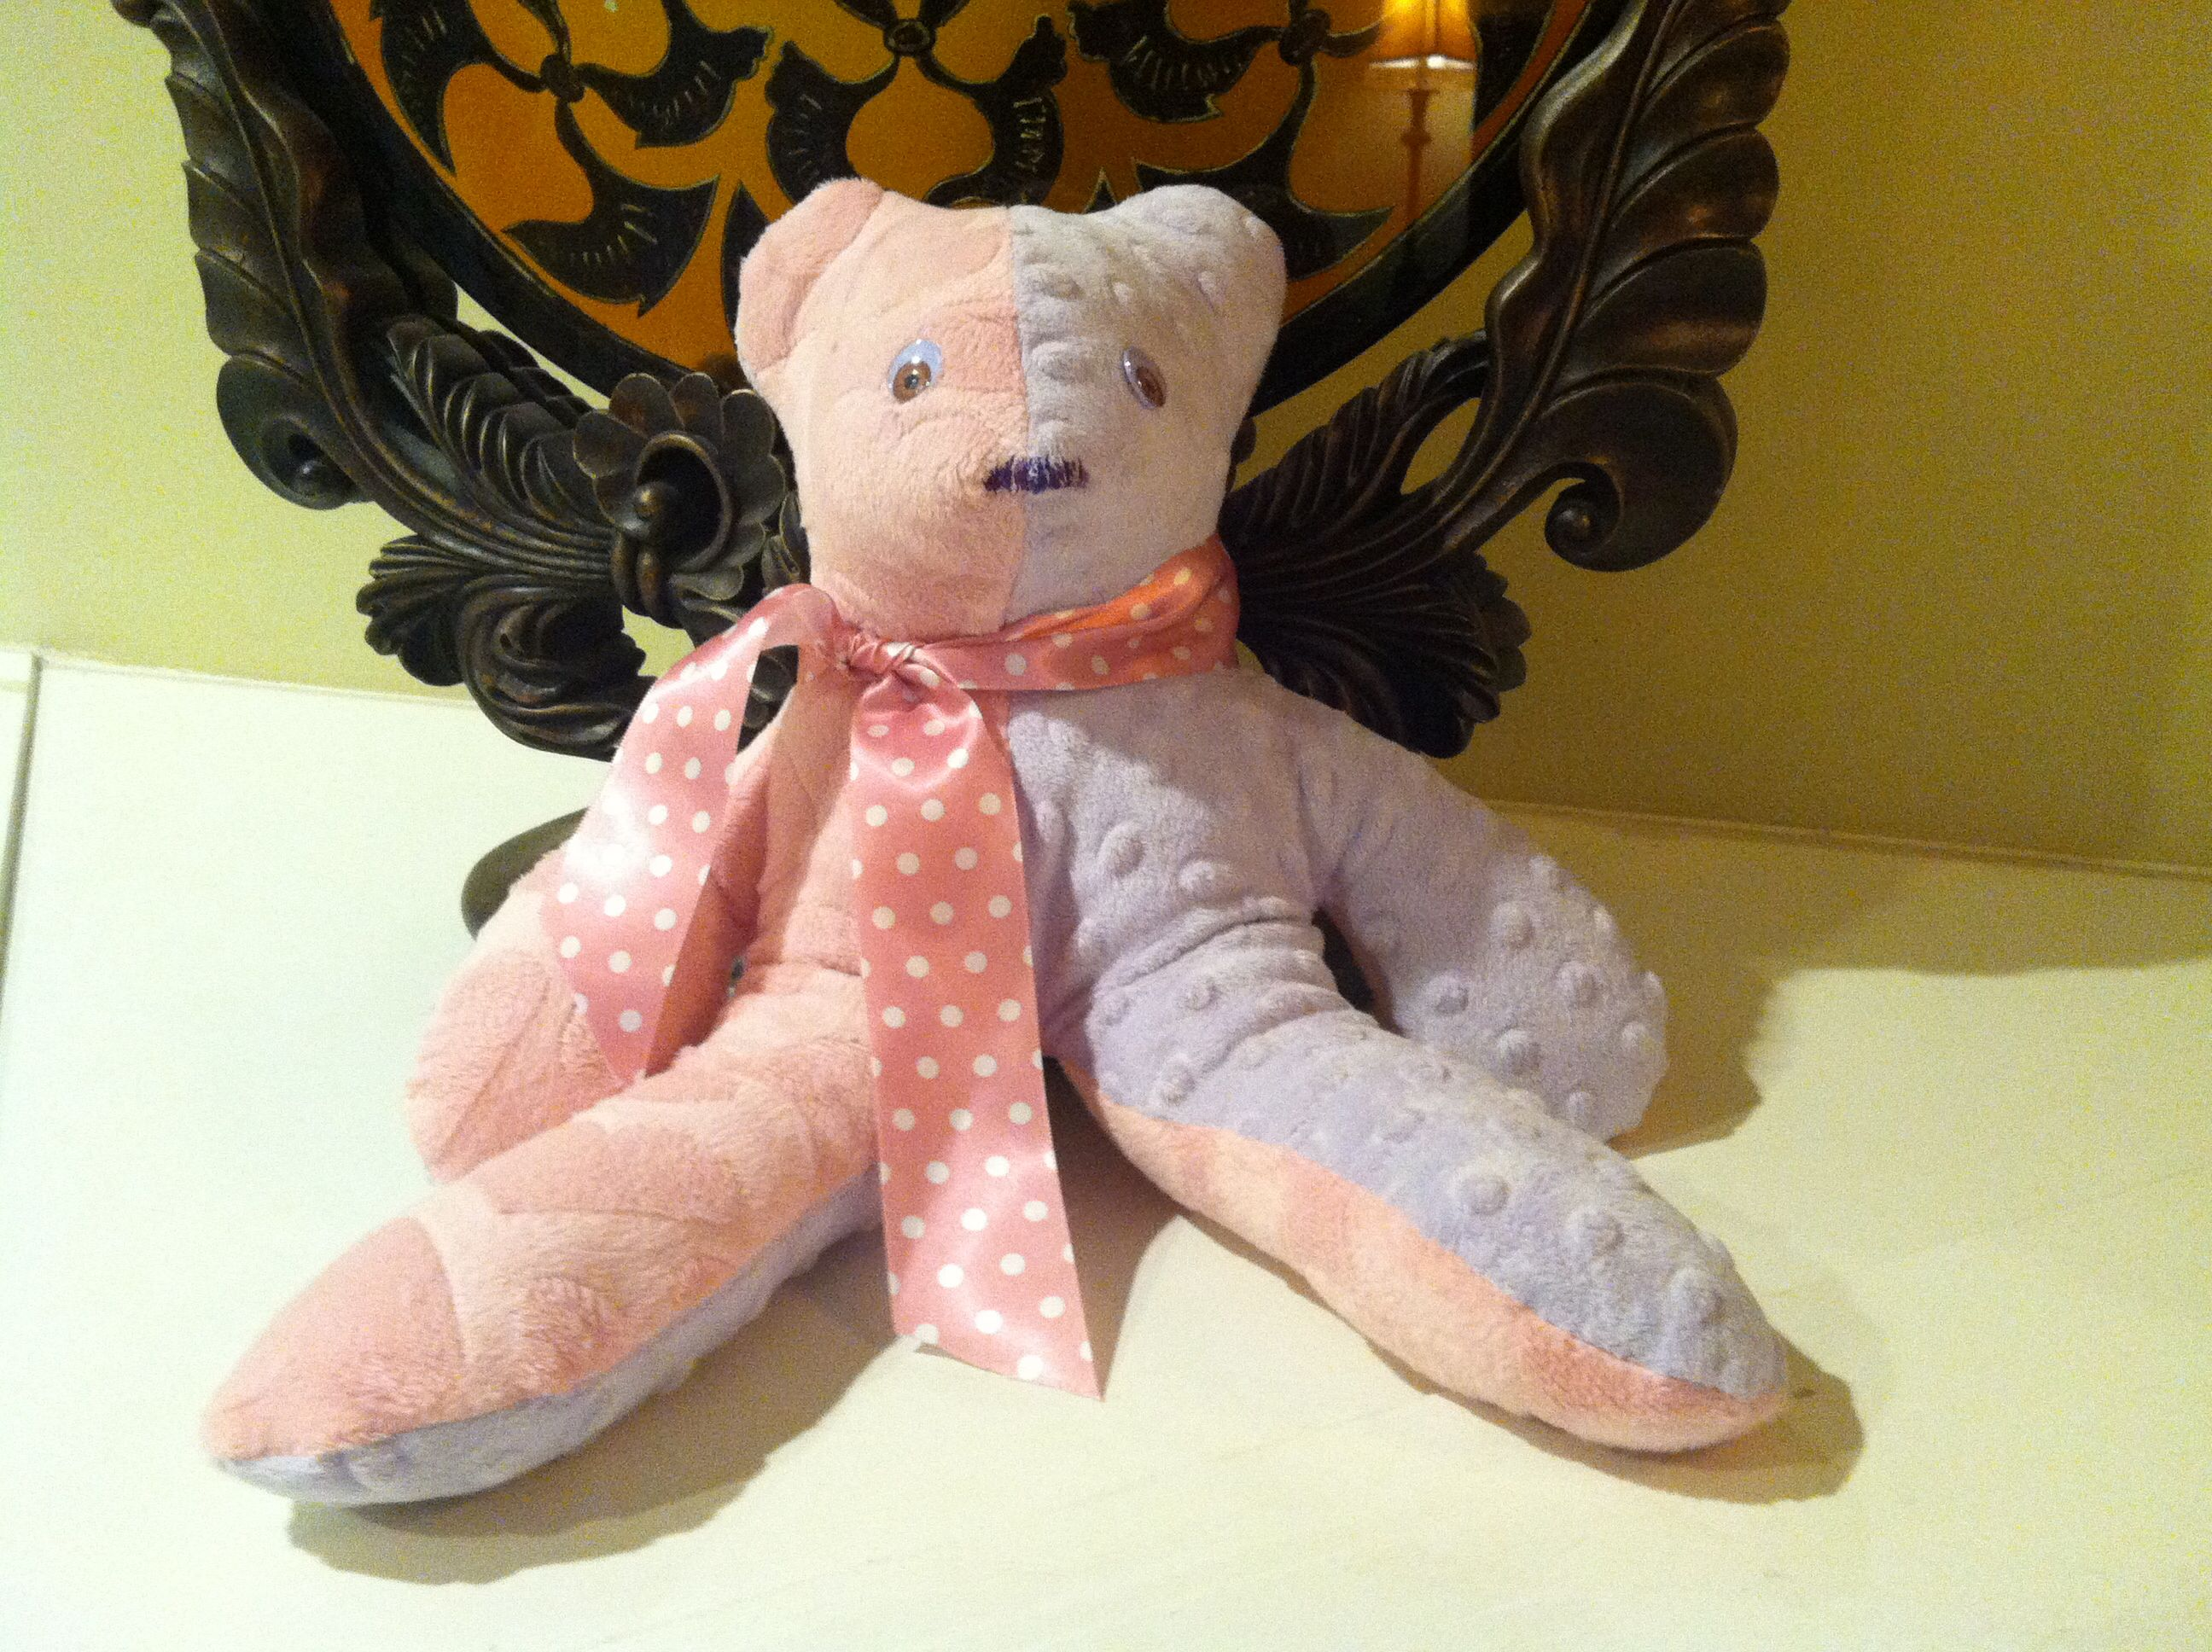 Build a bear for kids and insert a heart with them sew up and giv as present. Priceless